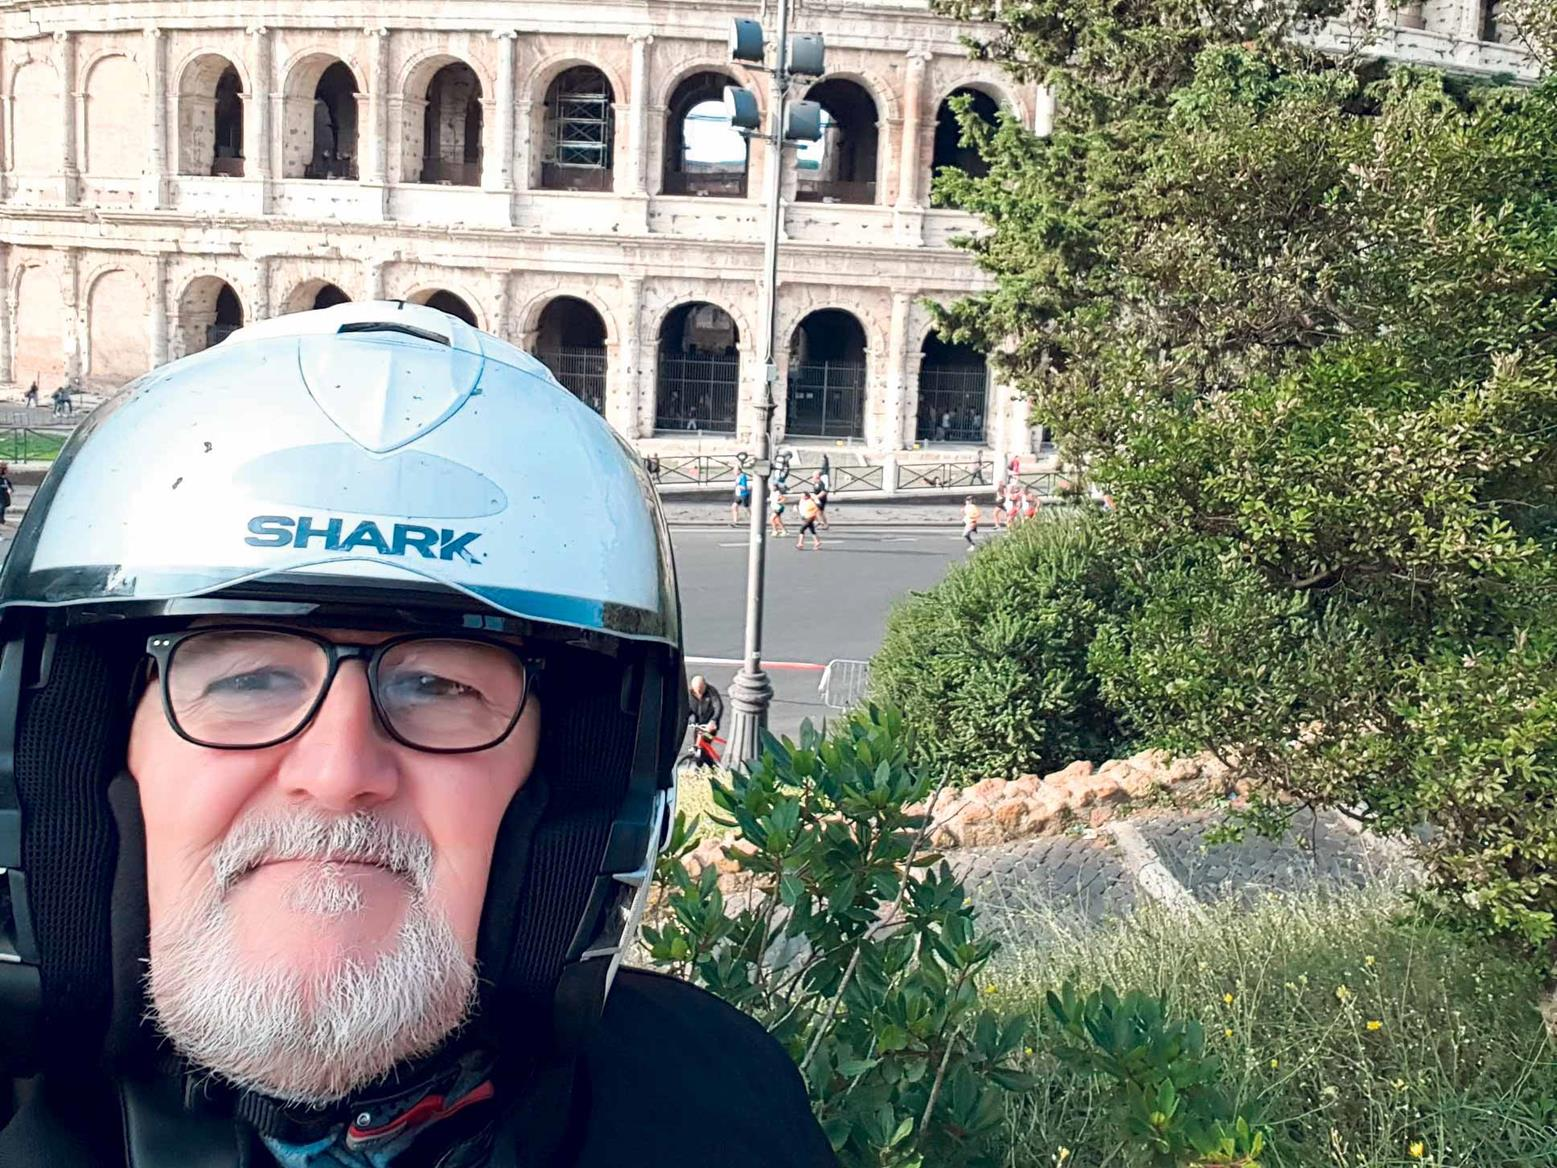 Phil's riding takes him all over Europe